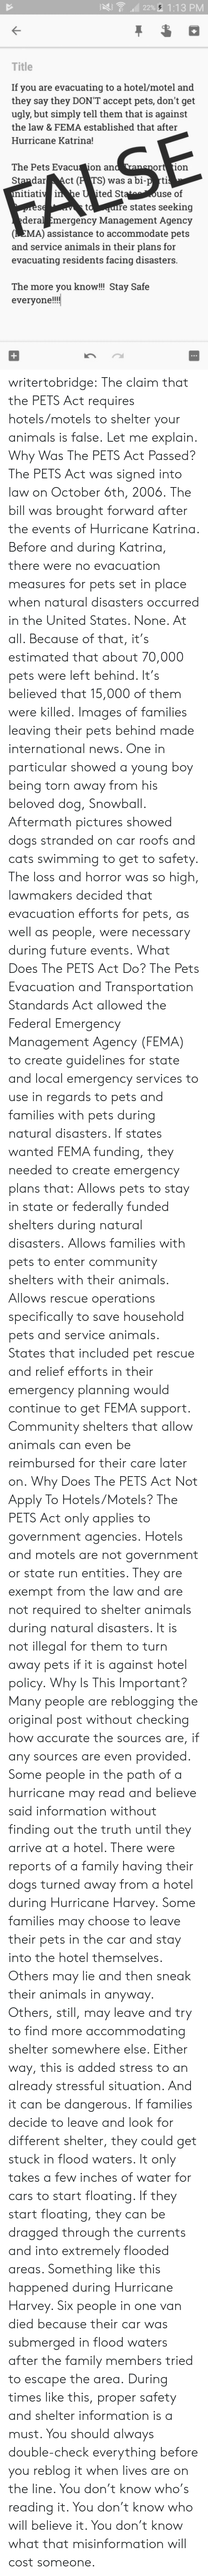 Animals, Cars, and Cats: 22%A 1:13 PM  Title  If you are evacuating to a hotel/motel and  they say they DON'T accept pets, don't get  ugly, but simply tell them that is against  the law & FEMA established that after  Hurricane Katrina!  The Pets Evacu ion an  StandarAct (P TS) was a bi-p rti  itiaii he U ited St  ort 1on  use of  re states seeking  deral Emergency Management Agency  (EMA) assistance to accommodate pets  and service animals in their plans for  evacuating residents facing disasters  The more you know!!! Stay Safe  everyon!! writertobridge: The claim that the PETS Act requires hotels/motels to shelter your animals is false. Let me explain. Why Was The PETS Act Passed? The PETS Act was signed into law on October 6th, 2006. The bill was brought forward after the events of Hurricane Katrina. Before and during Katrina, there were no evacuation measures for pets set in place when natural disasters occurred in the United States. None. At all. Because of that, it's estimated that about 70,000 pets were left behind. It's believed that 15,000 of them were killed. Images of families leaving their pets behind made international news. One in particular showed a young boy being torn away from his beloved dog, Snowball. Aftermath pictures showed dogs stranded on car roofs and cats swimming to get to safety. The loss and horror was so high, lawmakers decided that evacuation efforts for pets, as well as people, were necessary during future events. What Does The PETS Act Do? The Pets Evacuation and Transportation Standards Act allowed the Federal Emergency Management Agency (FEMA) to create guidelines for state and local emergency services to use in regards to pets and families with pets during natural disasters. If states wanted FEMA funding, they needed to create emergency plans that: Allows pets to stay in state or federally funded shelters during natural disasters.  Allows families with pets to enter community shelters with their animals. Allows rescue operations s